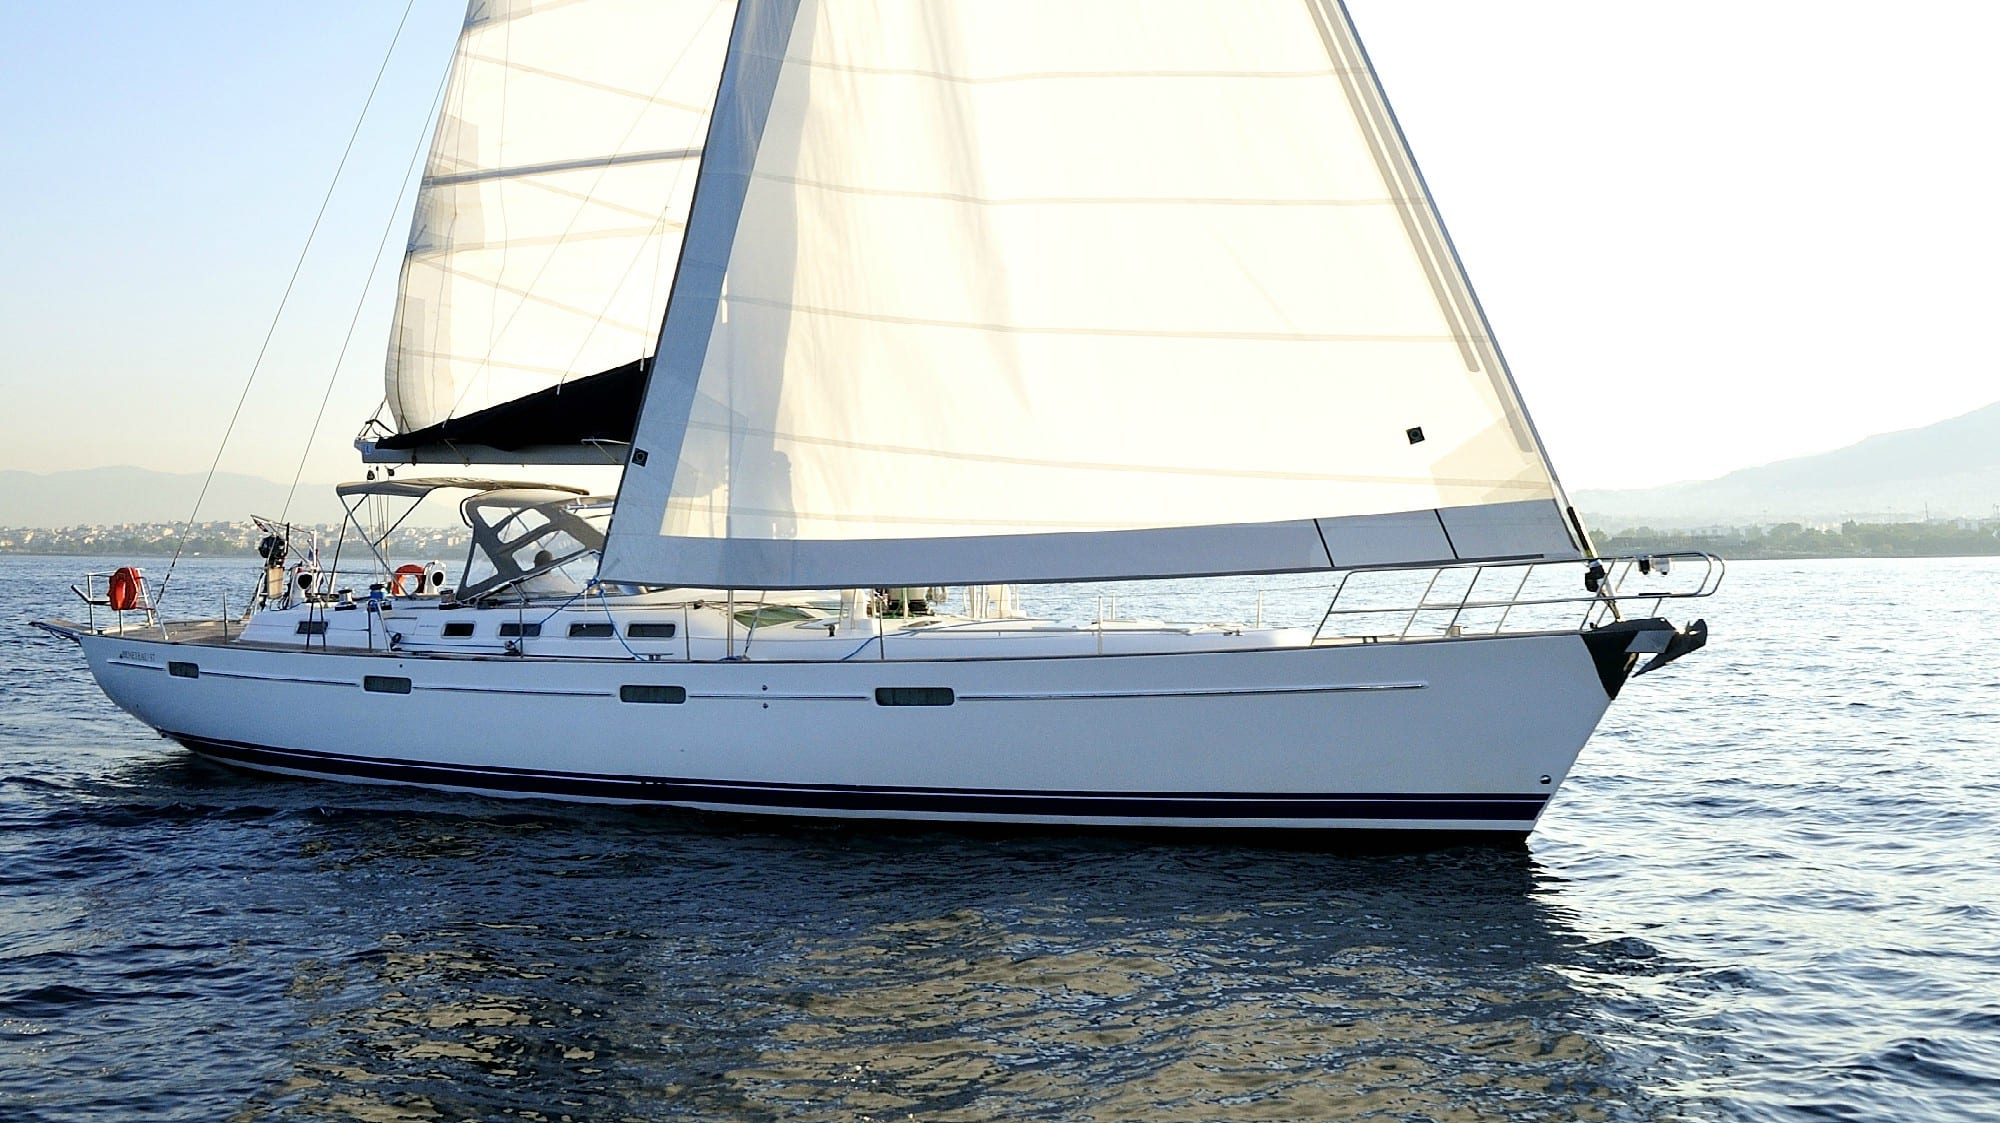 sea star sailing yacht profile (4) -  Valef Yachts Chartering - 1895